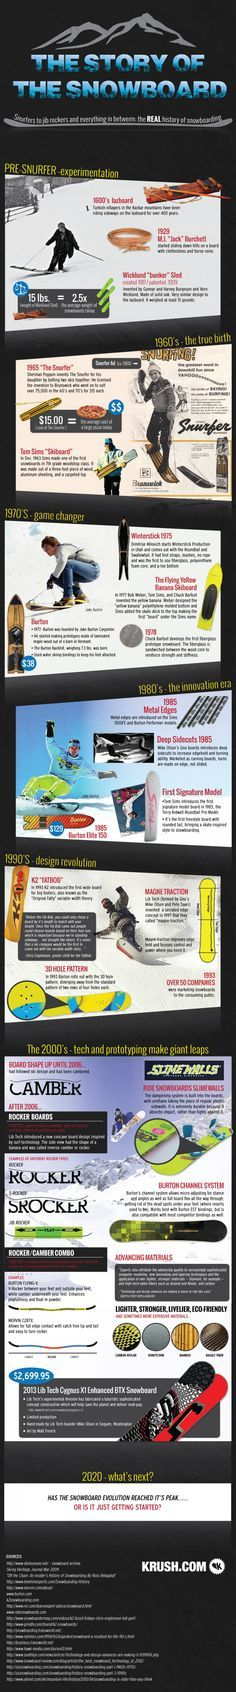 The History of Snowboarding   Visual.ly more snowboarding tips @ https://www.facebook.com/Snowboard-Equipment-174997816033563